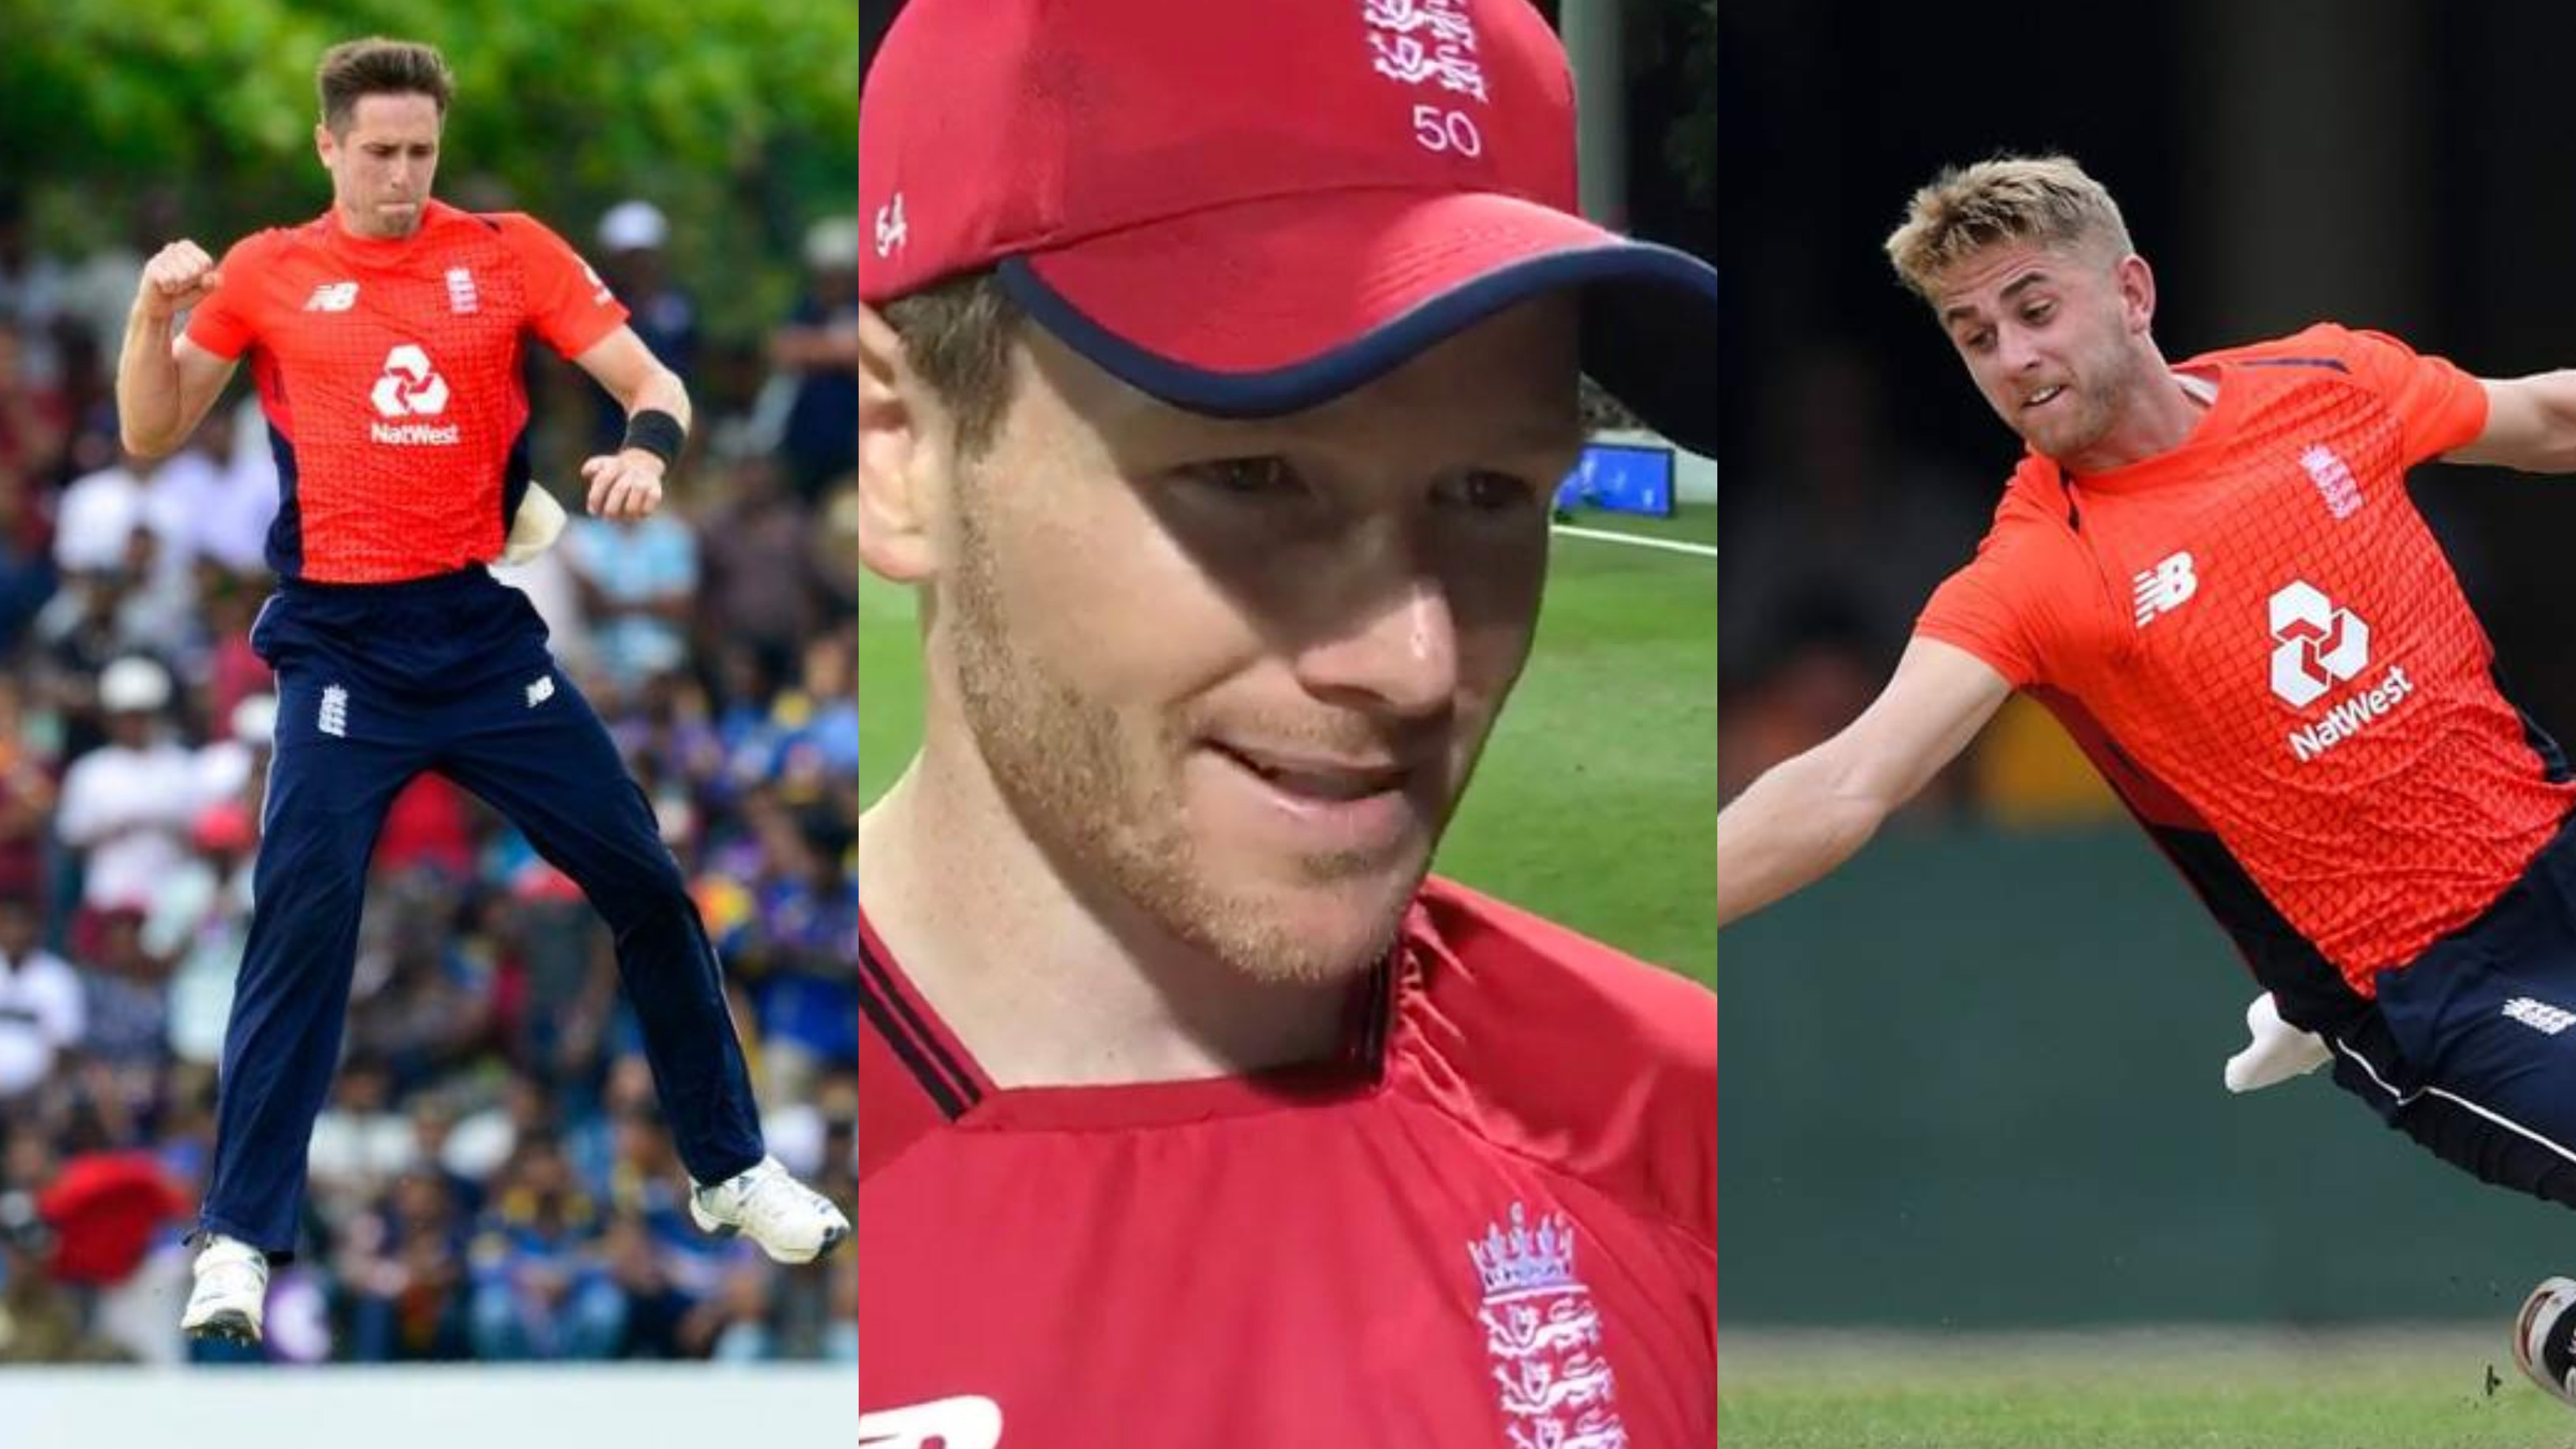 SL v ENG 2018: Olly Stone's rise gives Eoin Morgan a 'good headache' ahead of World Cup 2019